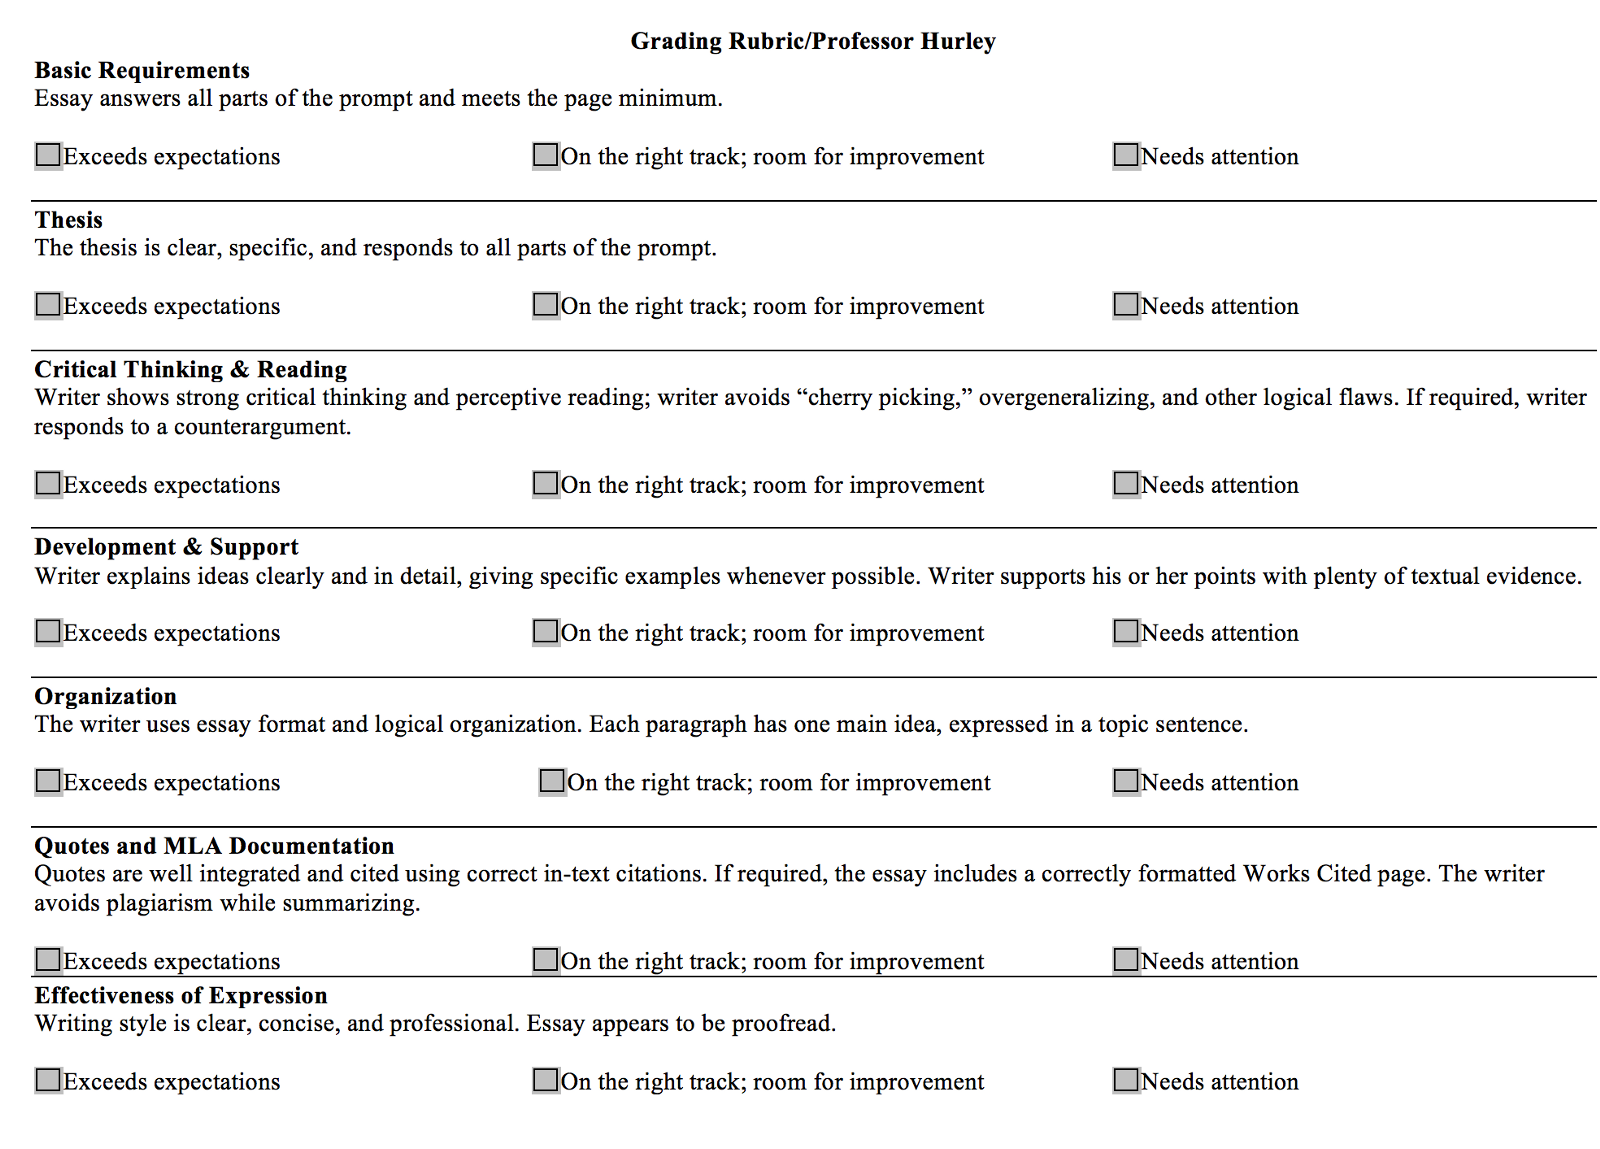 007 1l7bkjqmu2kth Pcoqy7bgg Rubrics For Essay Breathtaking Writing High School In Social Studies Doc Full